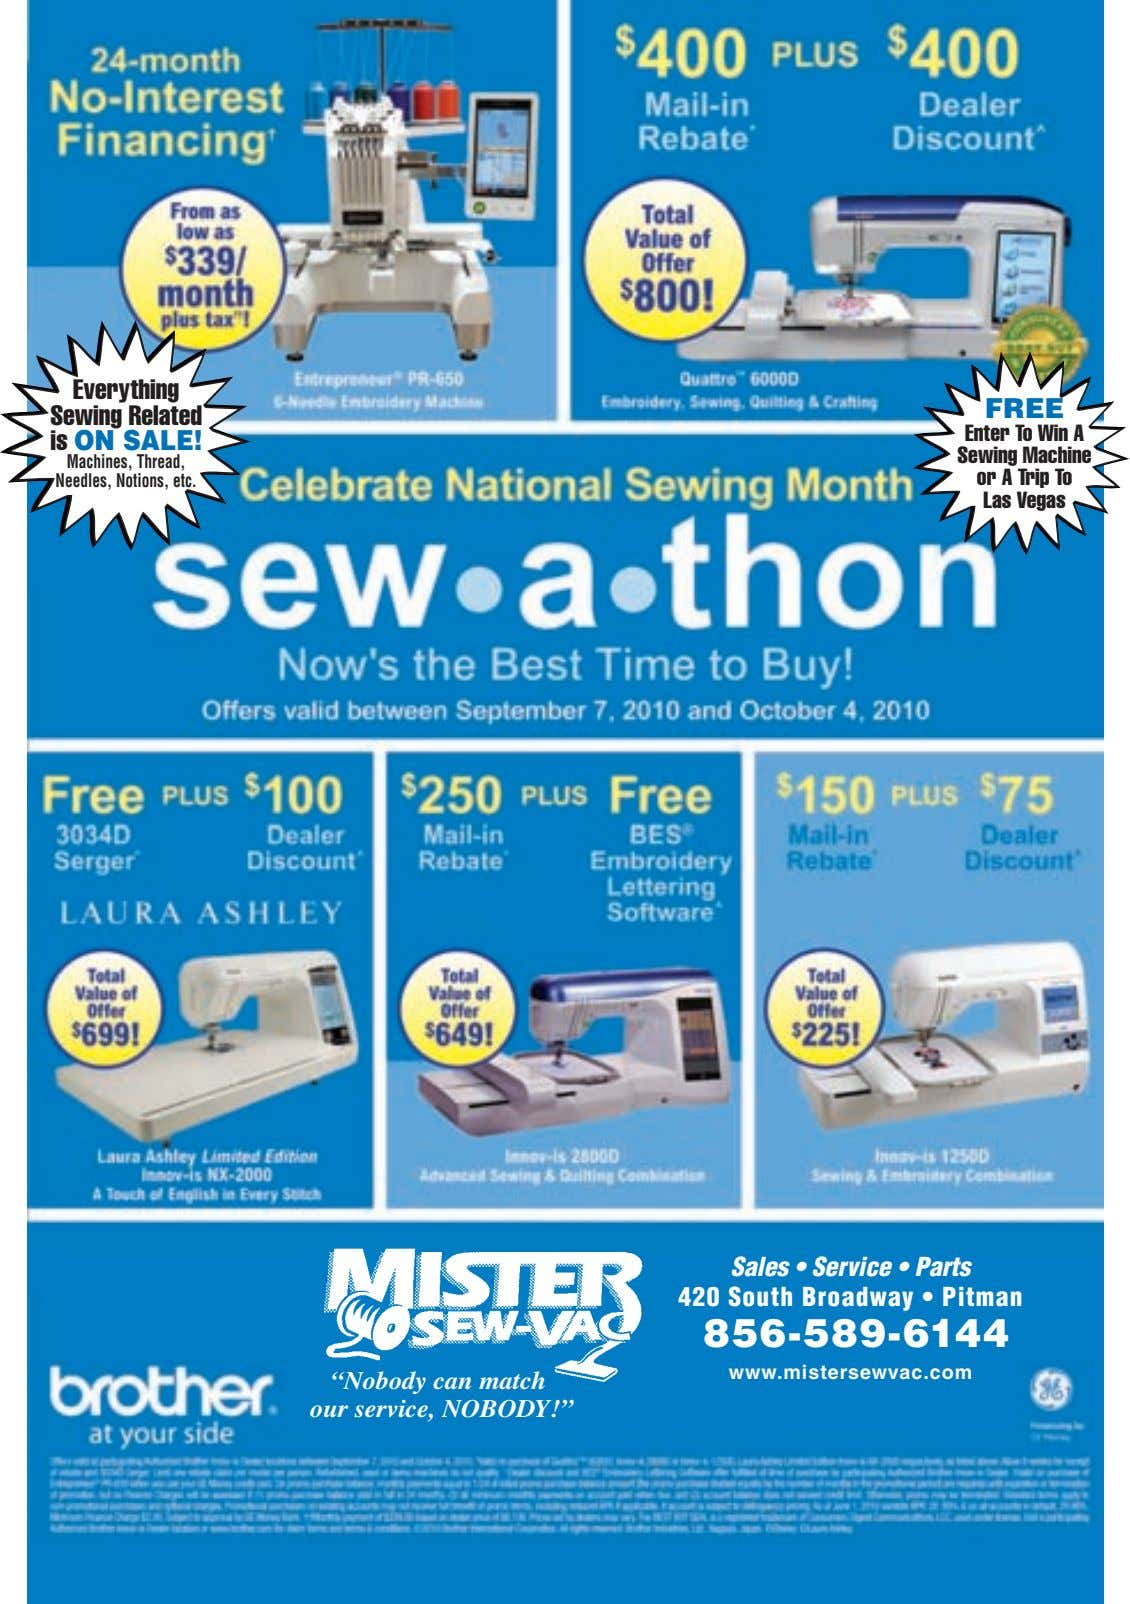 Everything Sewing Related is ON SALE! FREE Machines, Thread, Needles, Notions, etc. Enter To Win